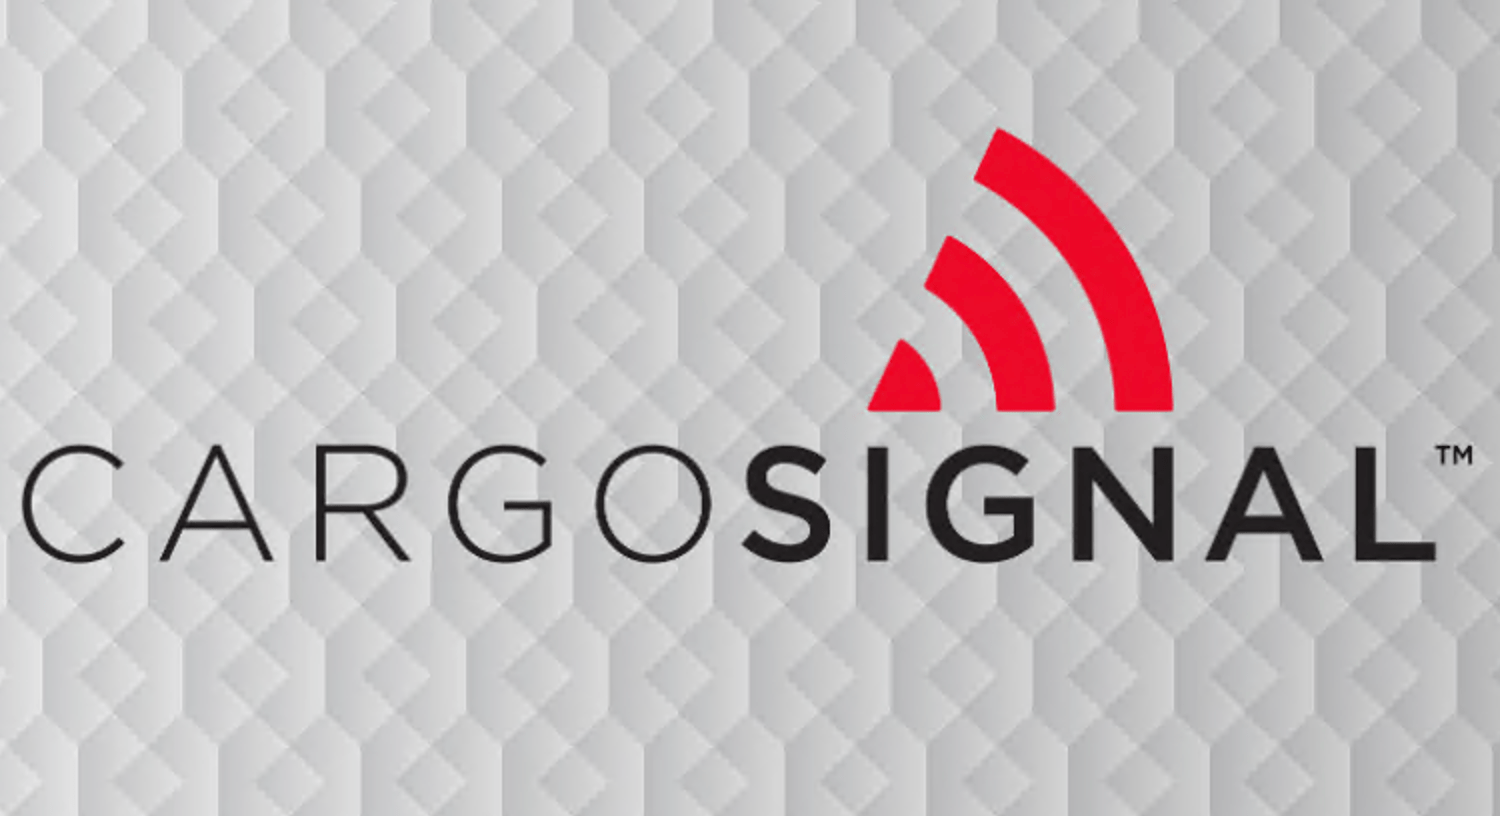 Iag Cargo Has Partnered With Cargo Signal To Offer A New